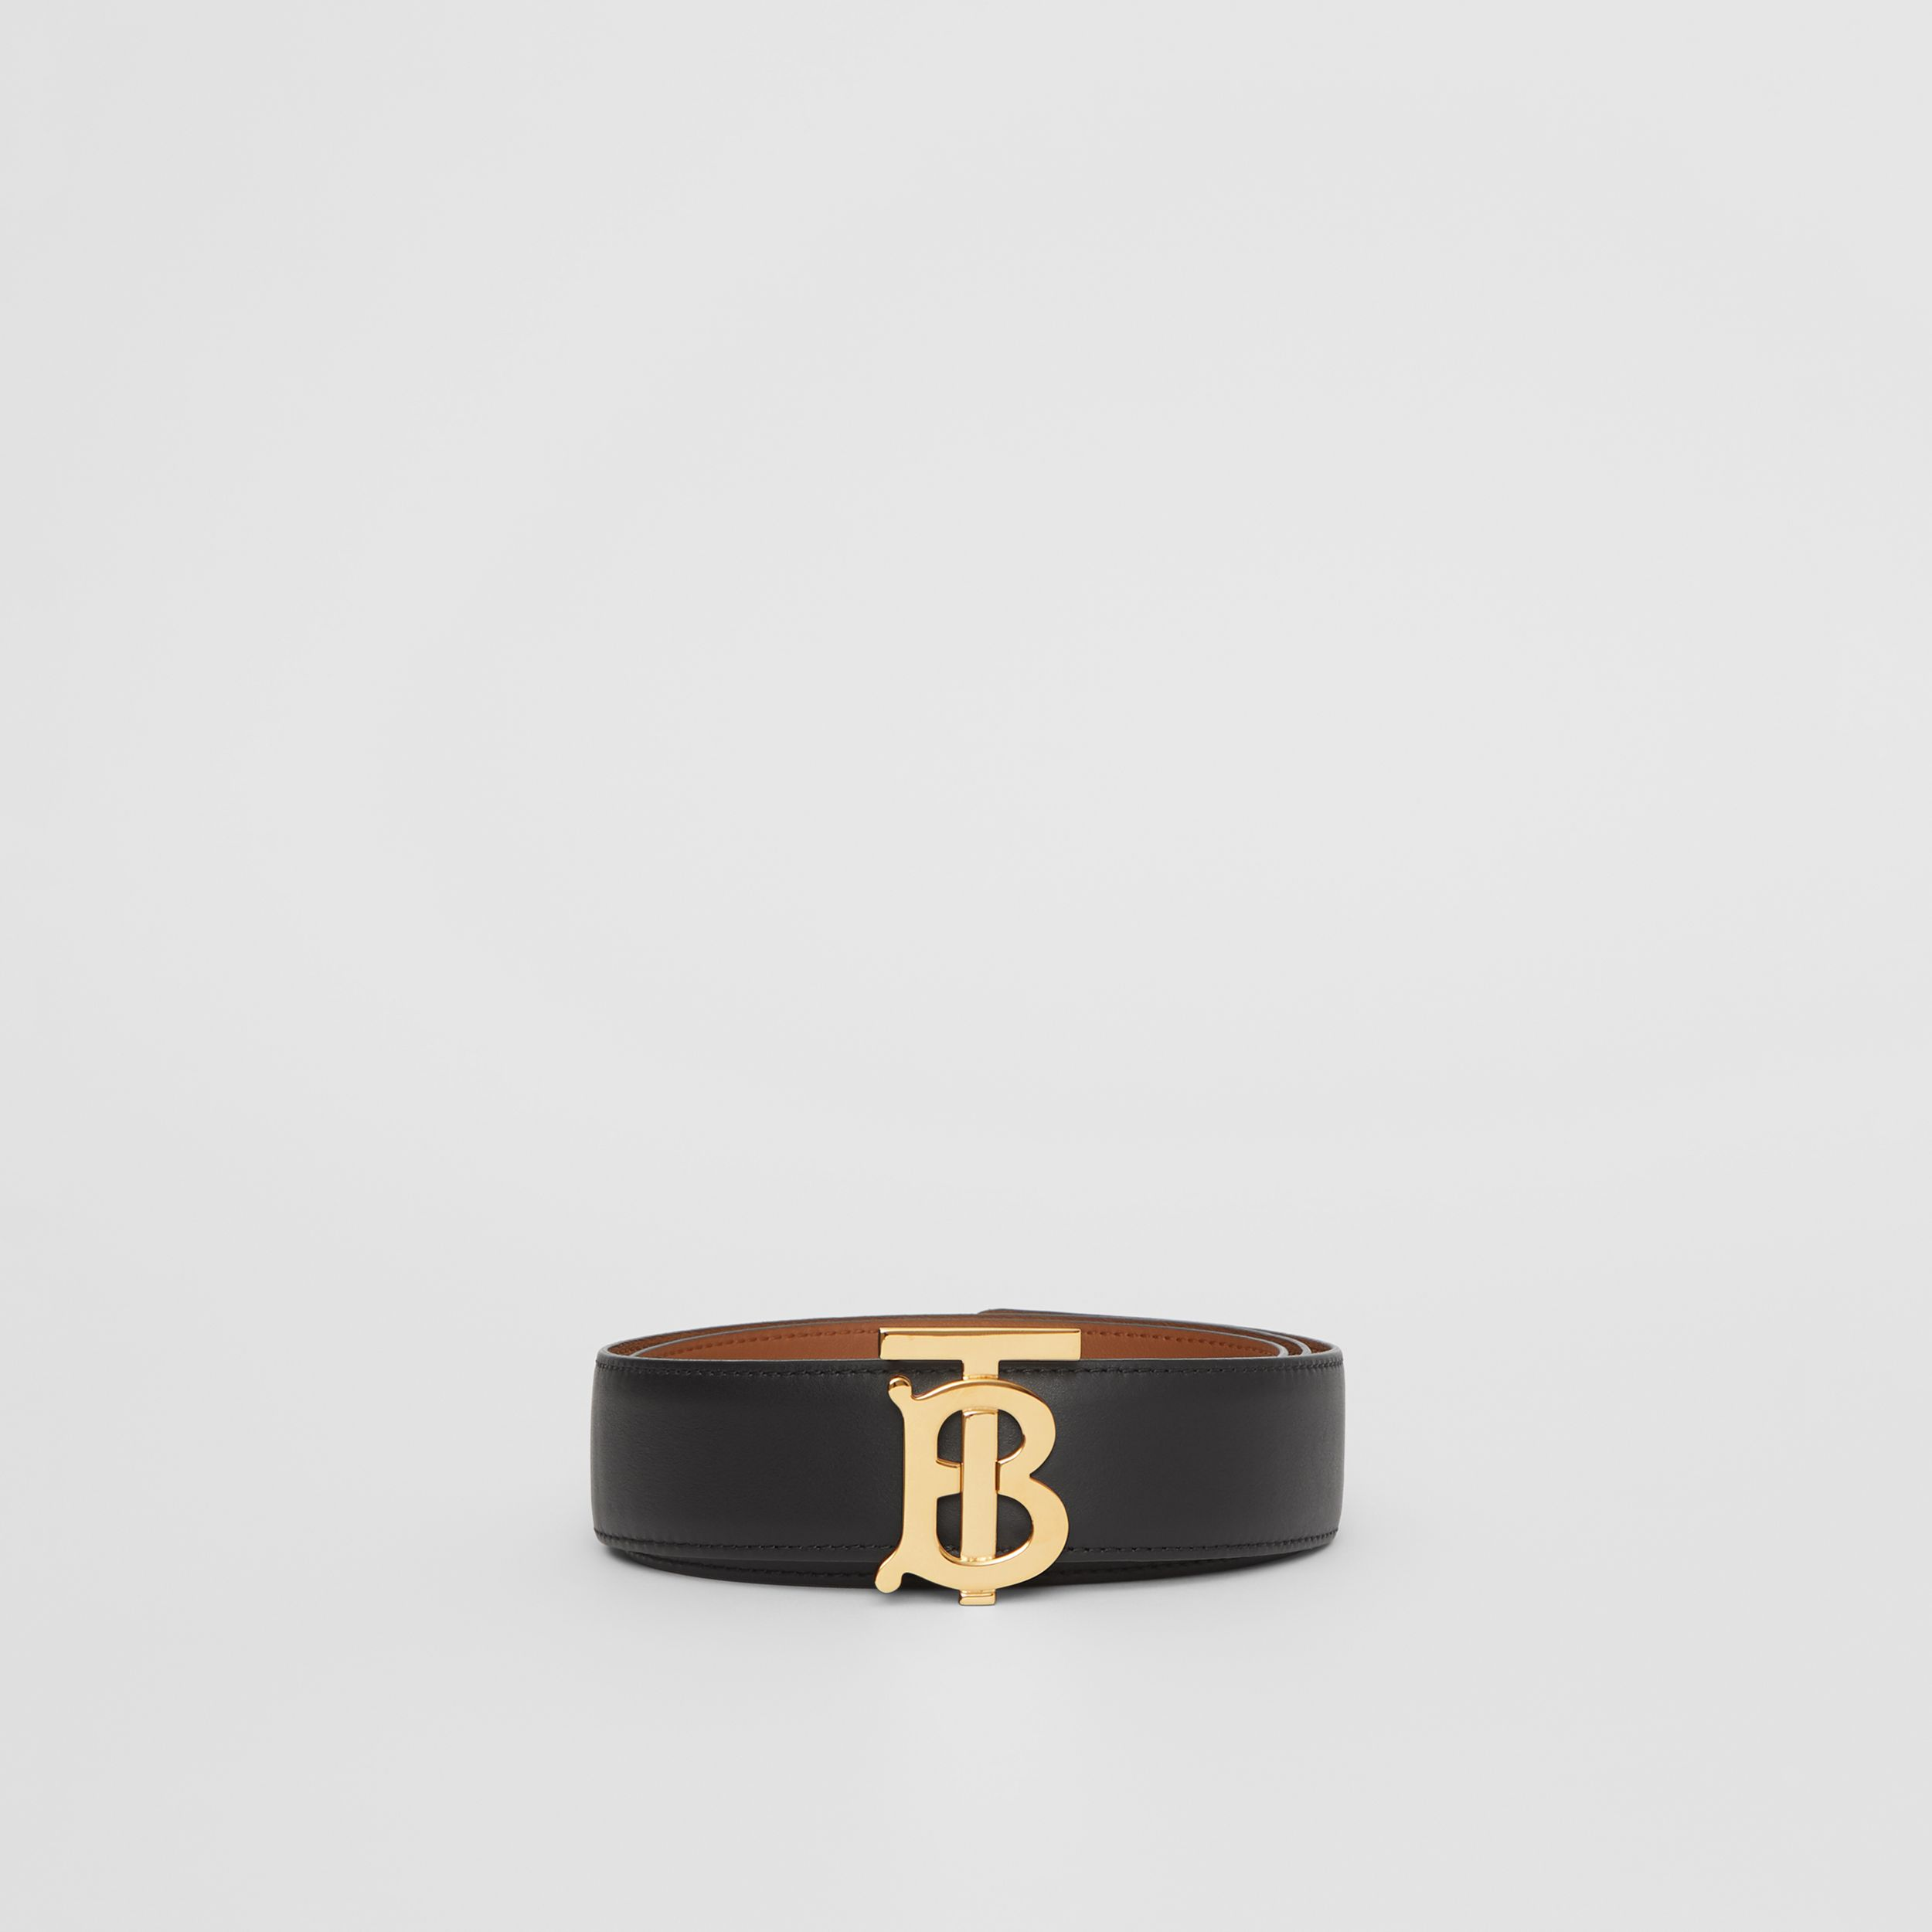 Reversible Monogram Motif Leather Belt in Black/malt Brown - Women | Burberry United Kingdom - 4